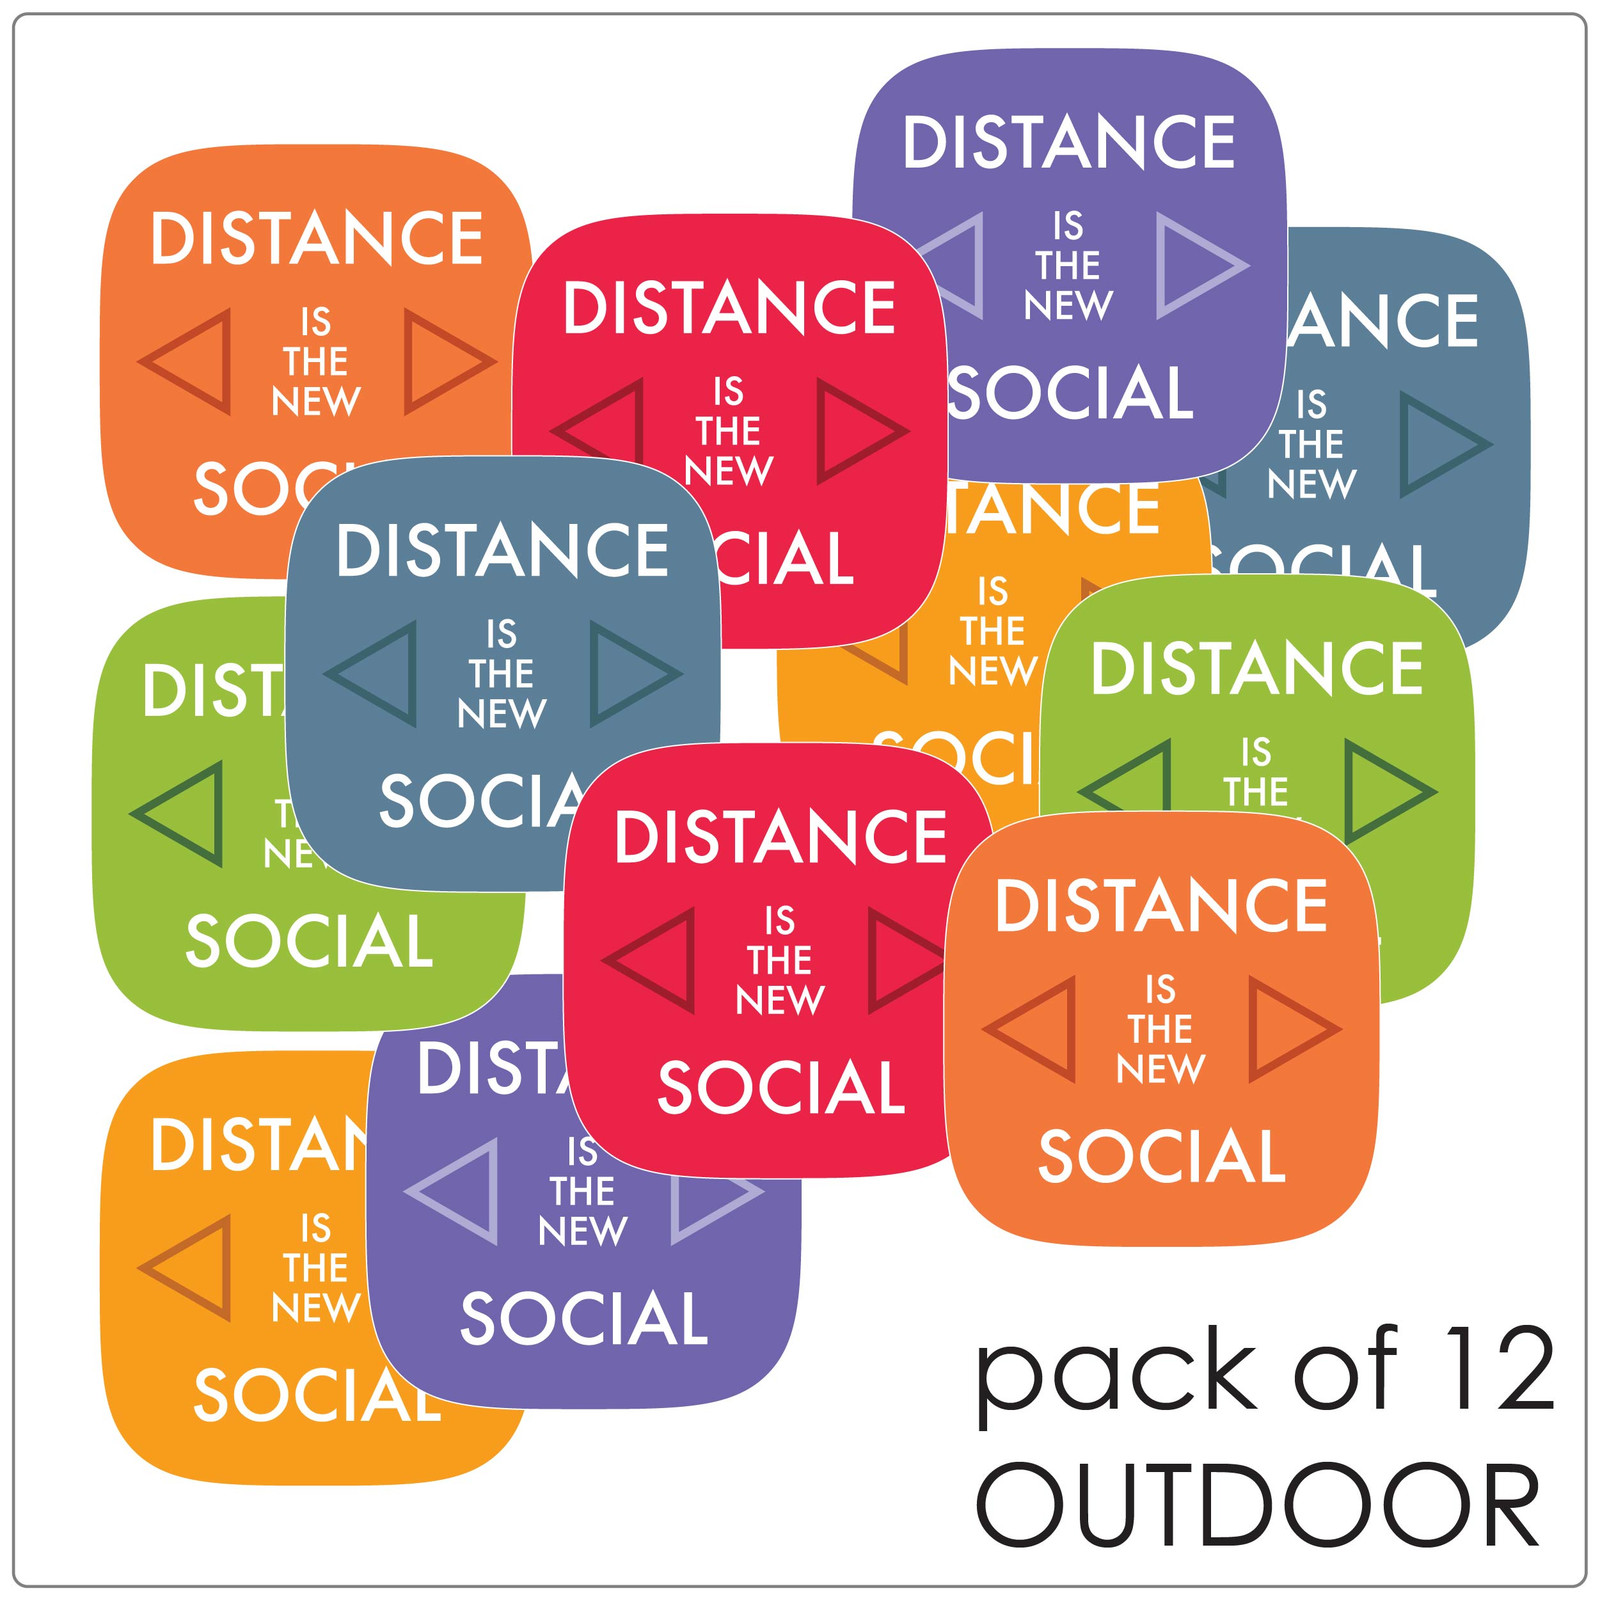 contemporary social distancing floor sticker for outdoor floors, pack of 12, mix Self-adhesive Corona virus floor sticker to help social distancing.